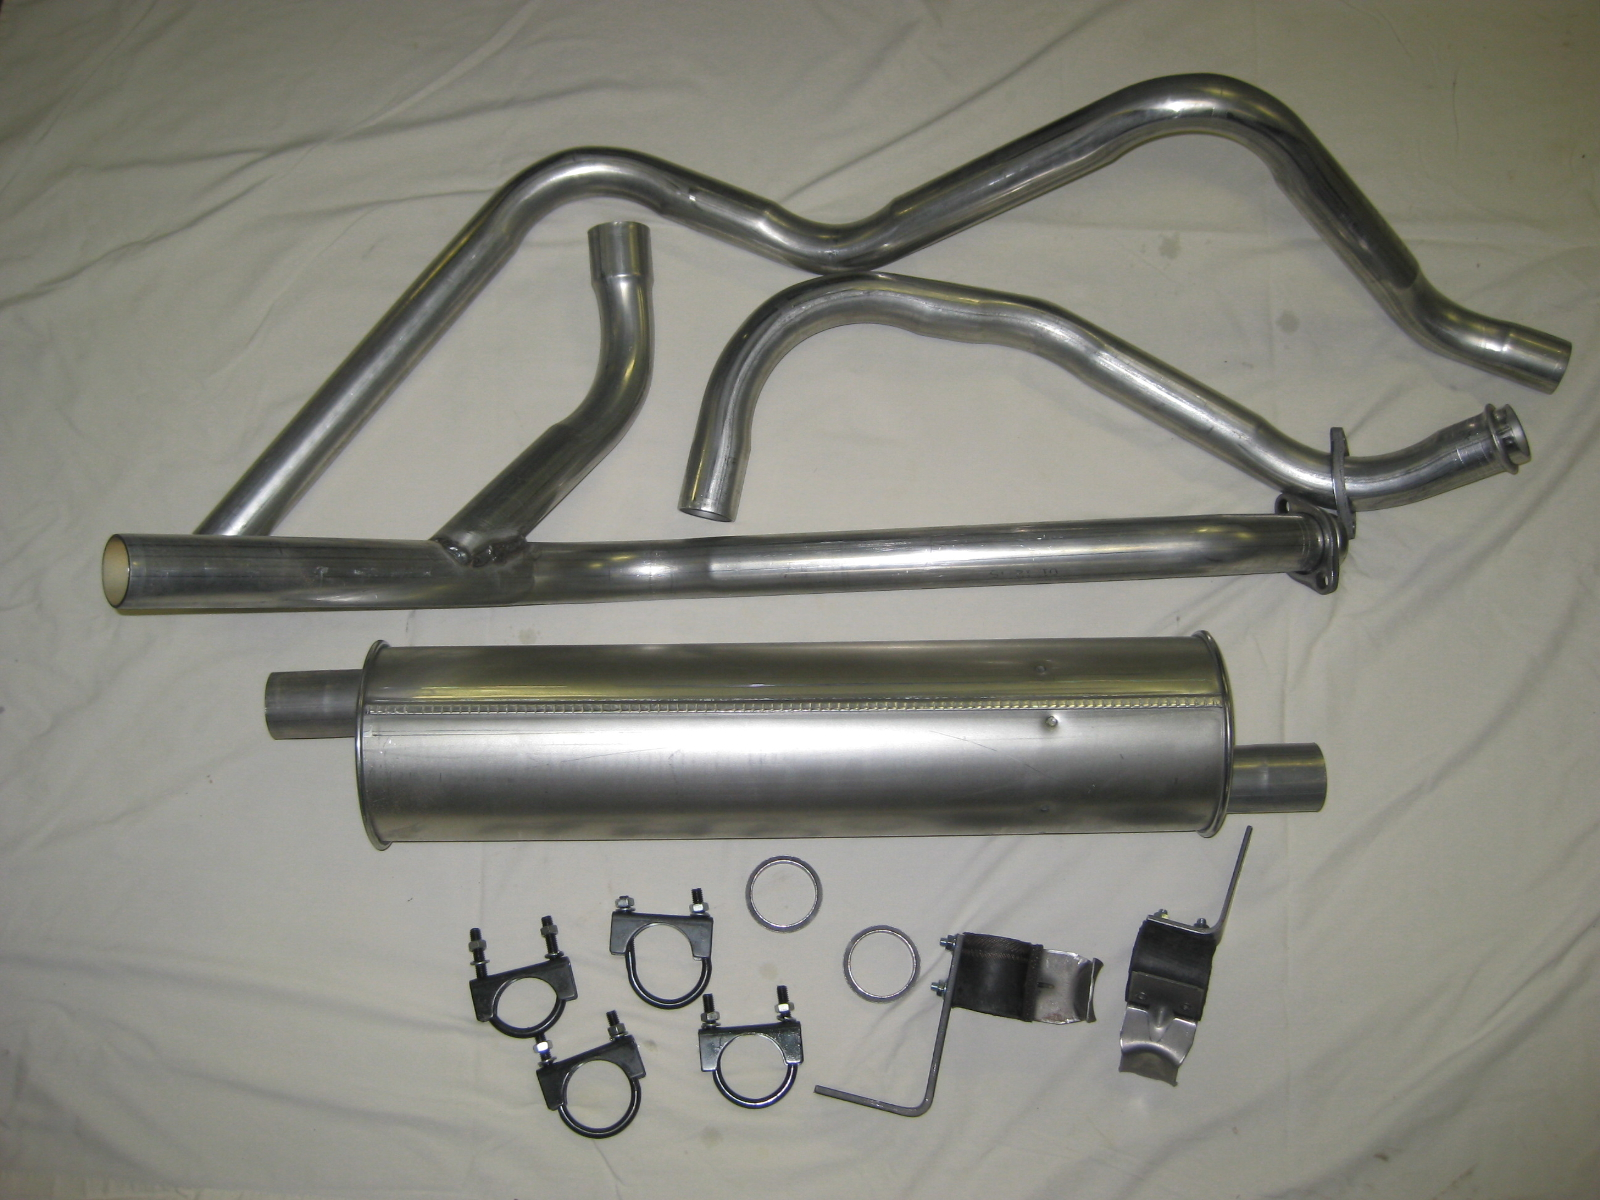 1966 77 Ford Bronco V8 289 302 Stock Exhaust Kit Graveyard Engine And Transmission Assembly Diagram It Is A New Month Which Means Time To Showcase Some Products Here At We Are Excited Tell You All About This Complete